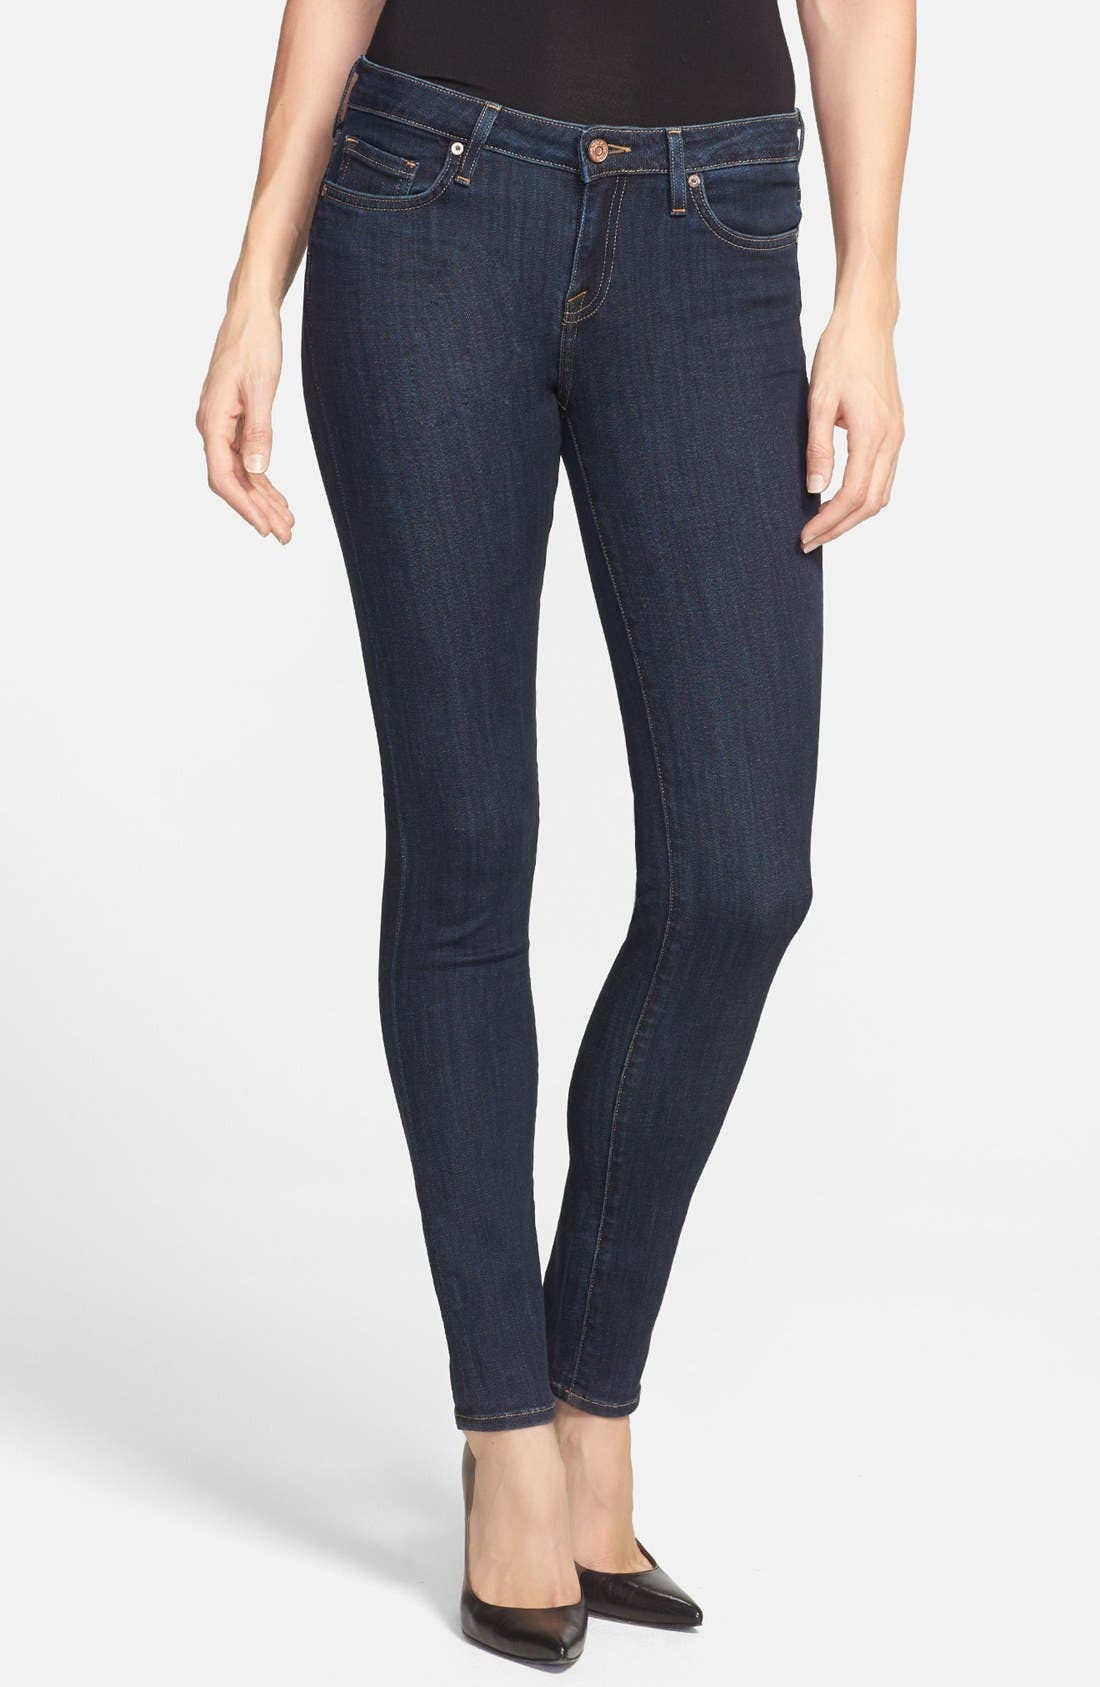 Alternate Image 1 Selected - Joie Stretch Skinny Jeans